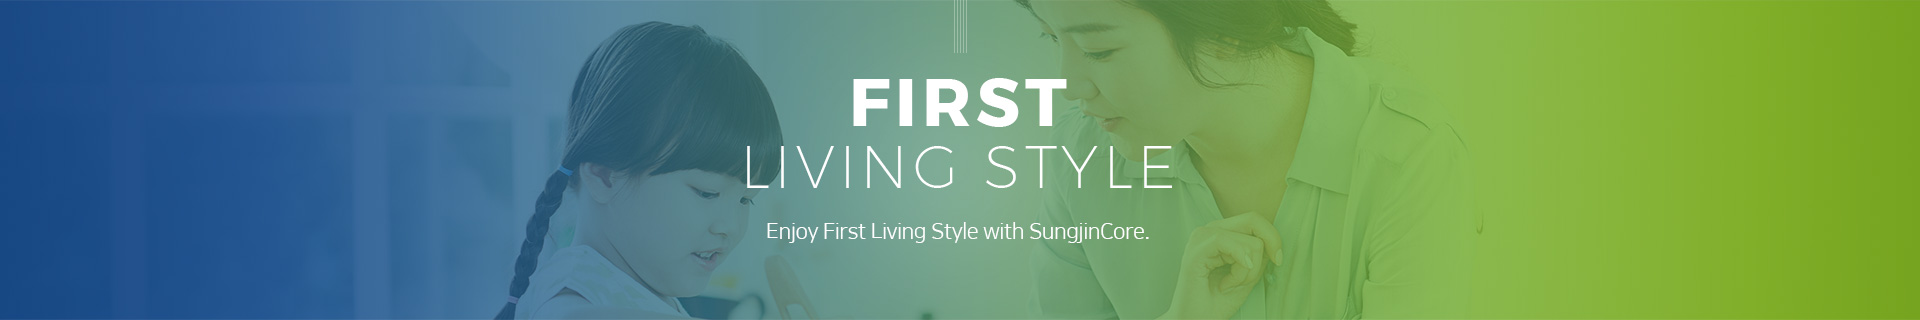 Enjoy First Living Style with SungjinCore